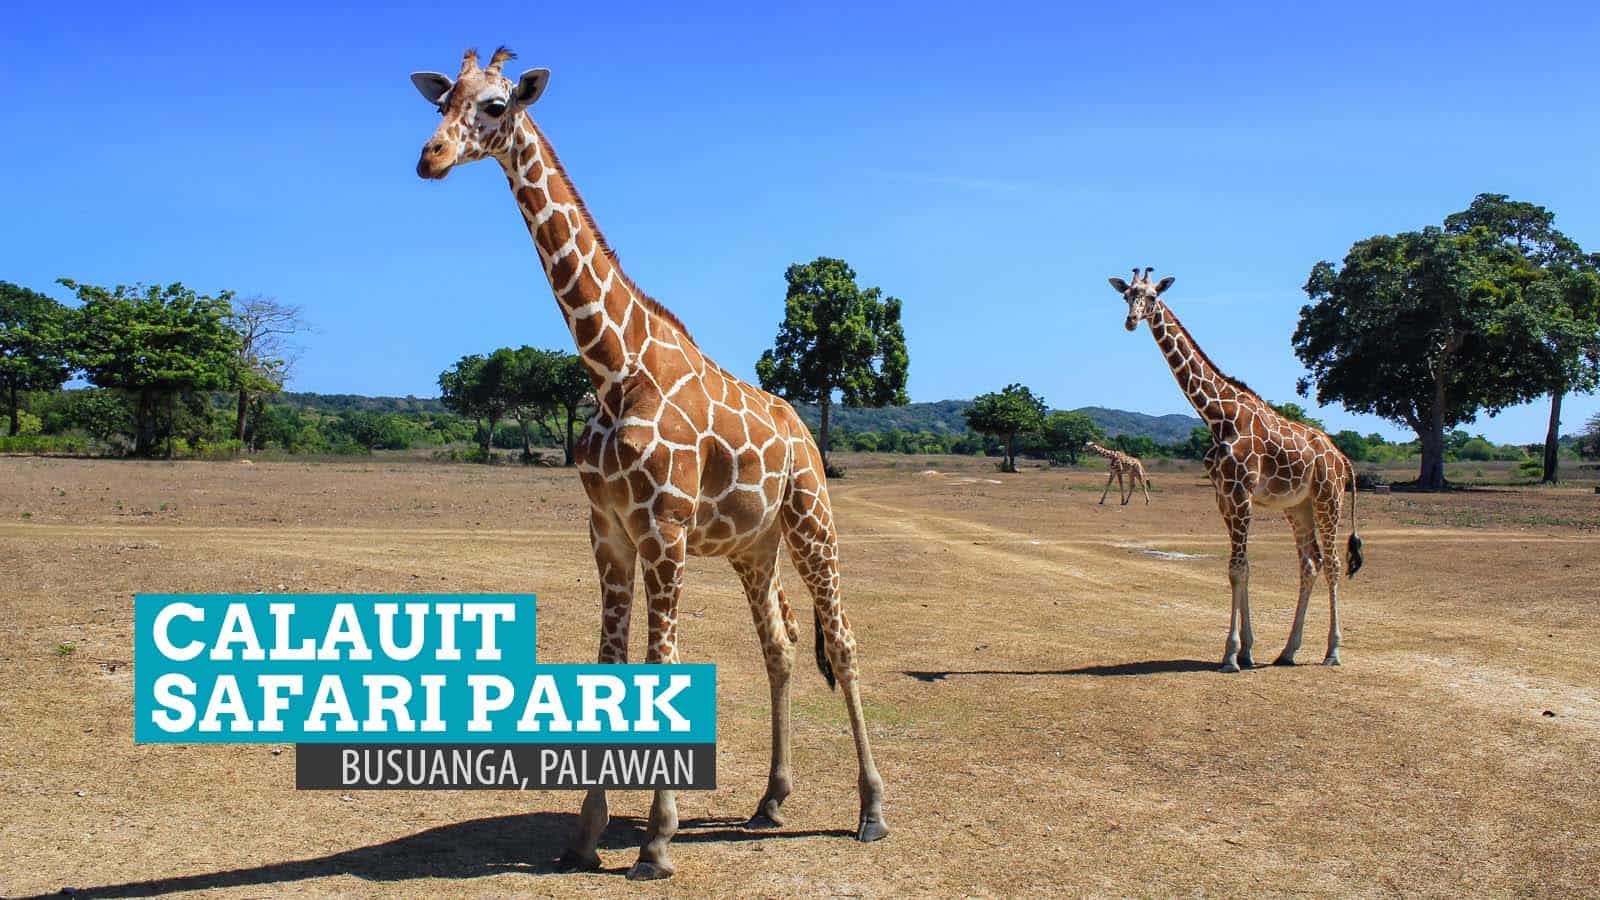 Calauit Safari Park: A Piece of Africa in Palawan, Philippines